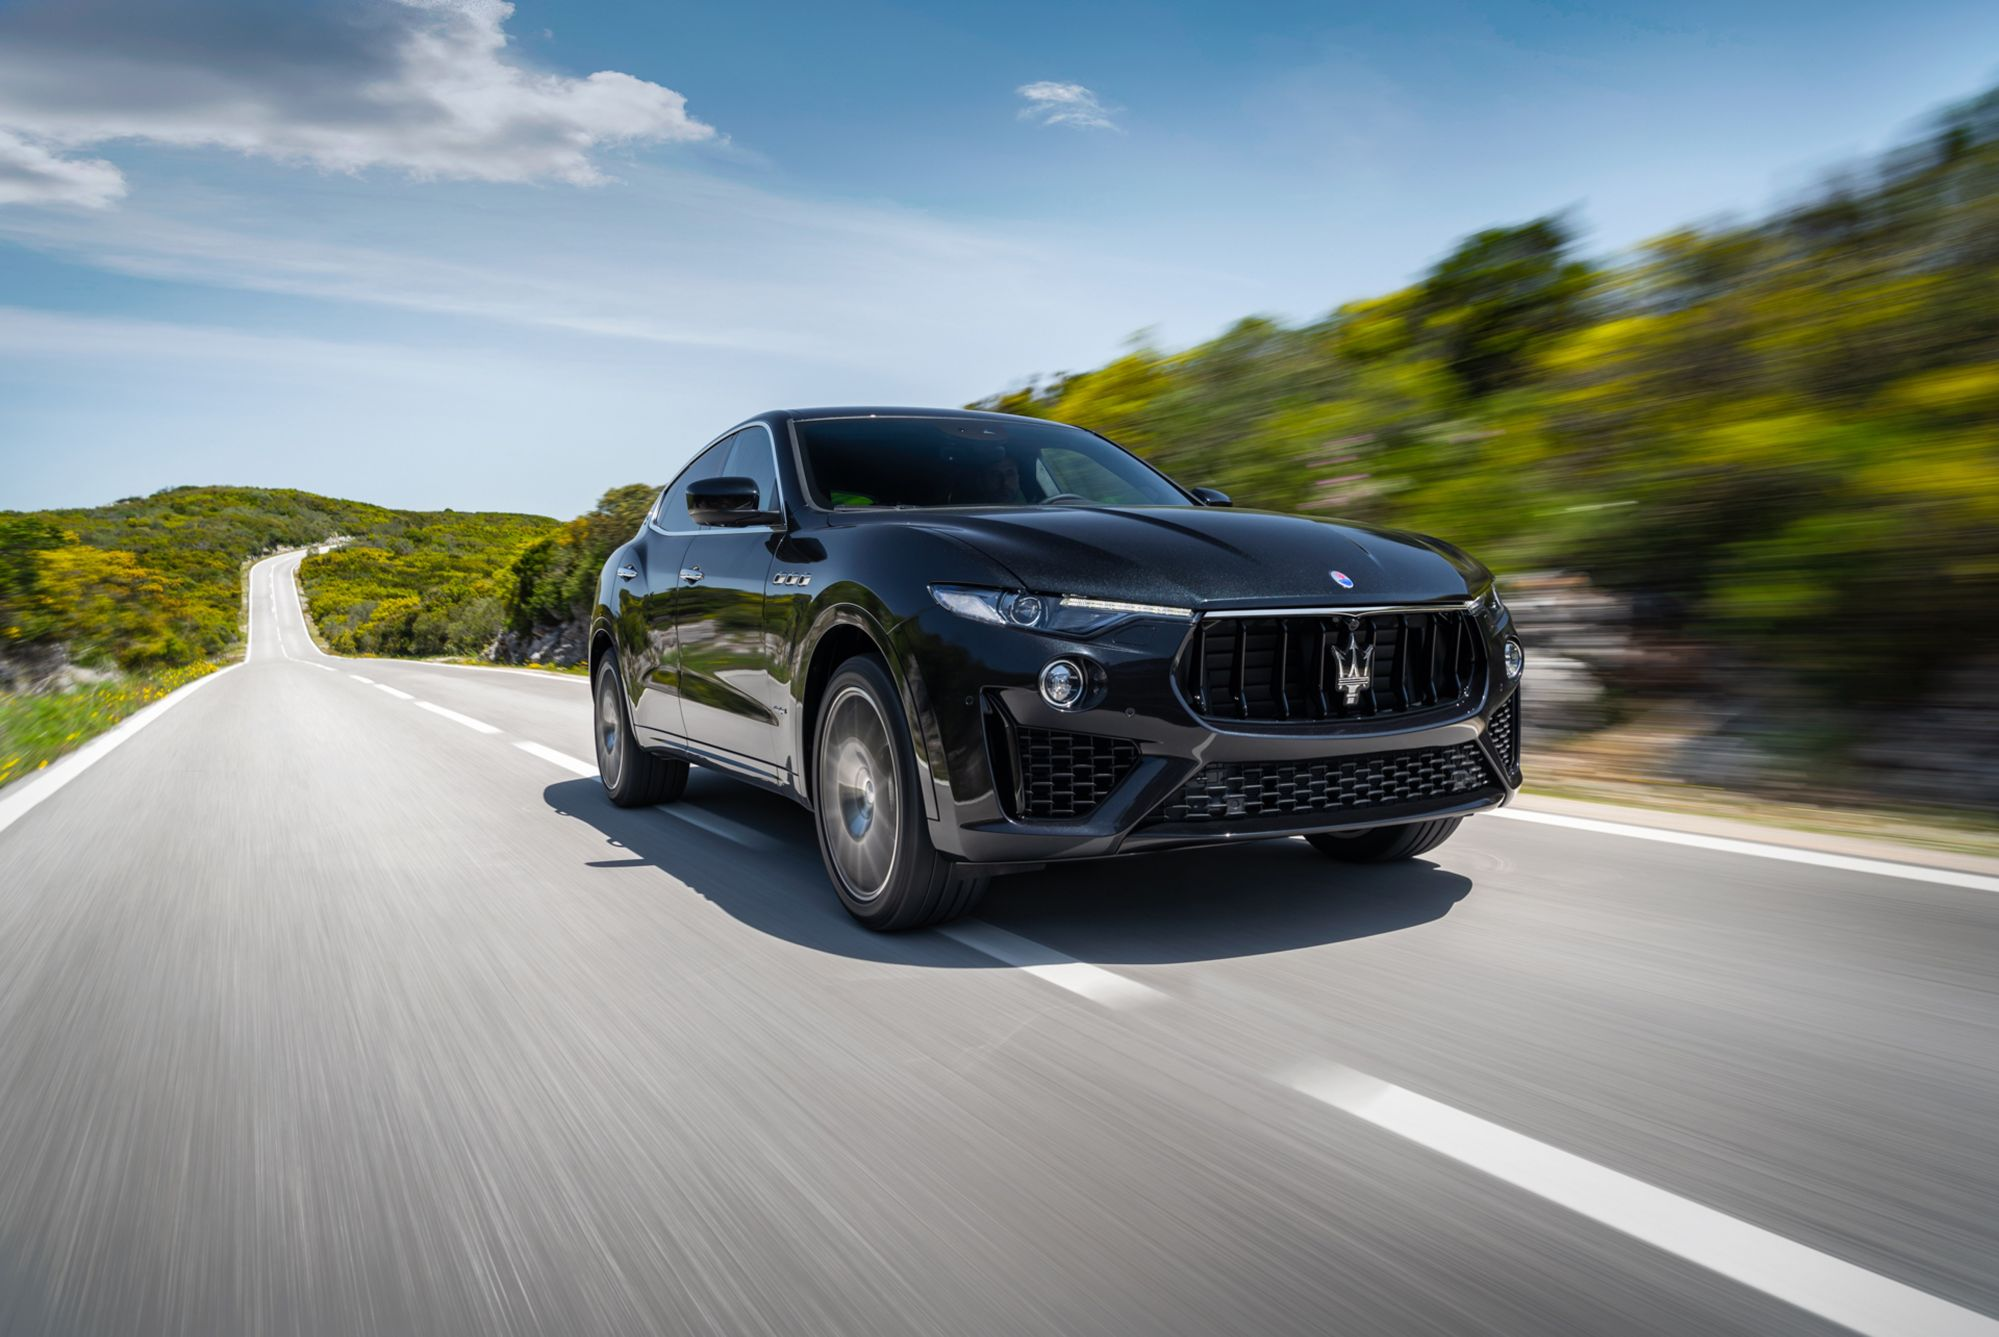 Drive Into the New Year With the Maserati Levante V6